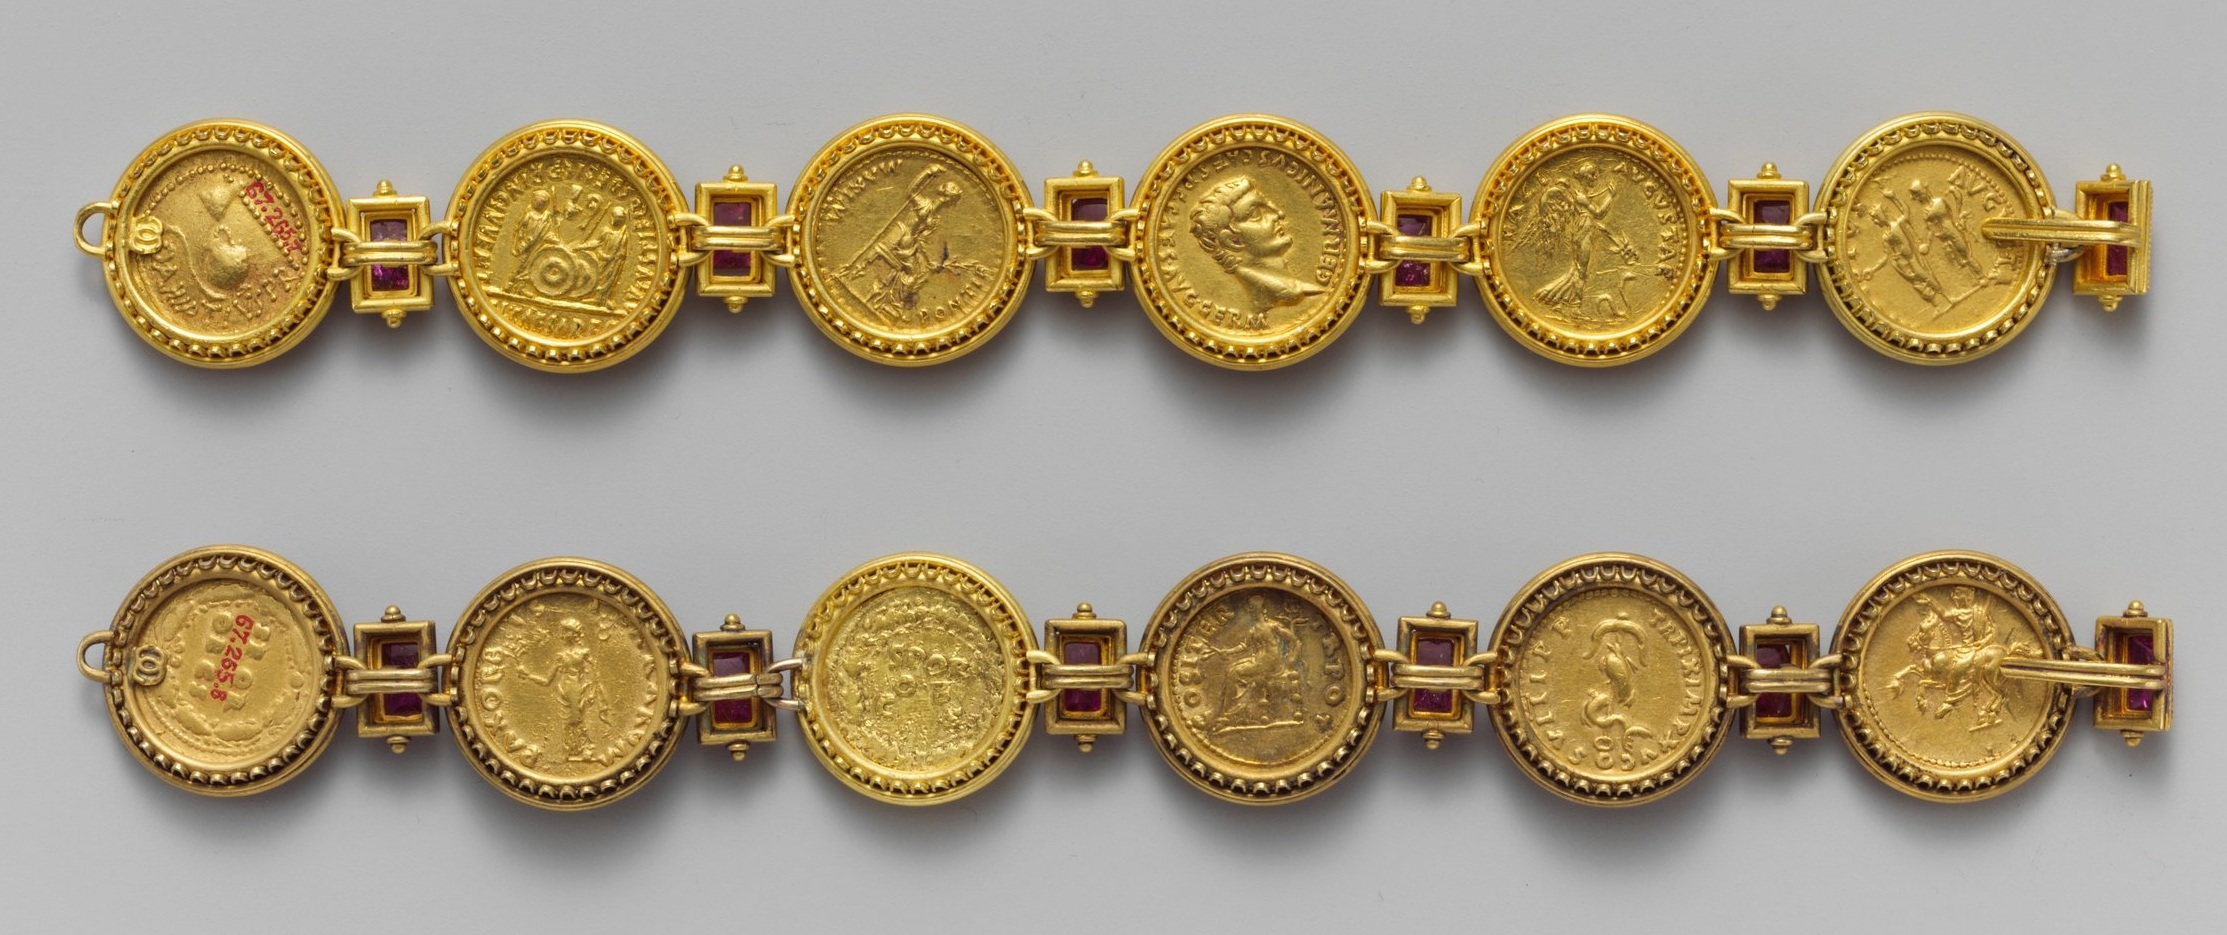 Gold aurei of the Twelve Caesars, ca. A.D. 69–96, from  https://www.metmuseum.org/art/collection